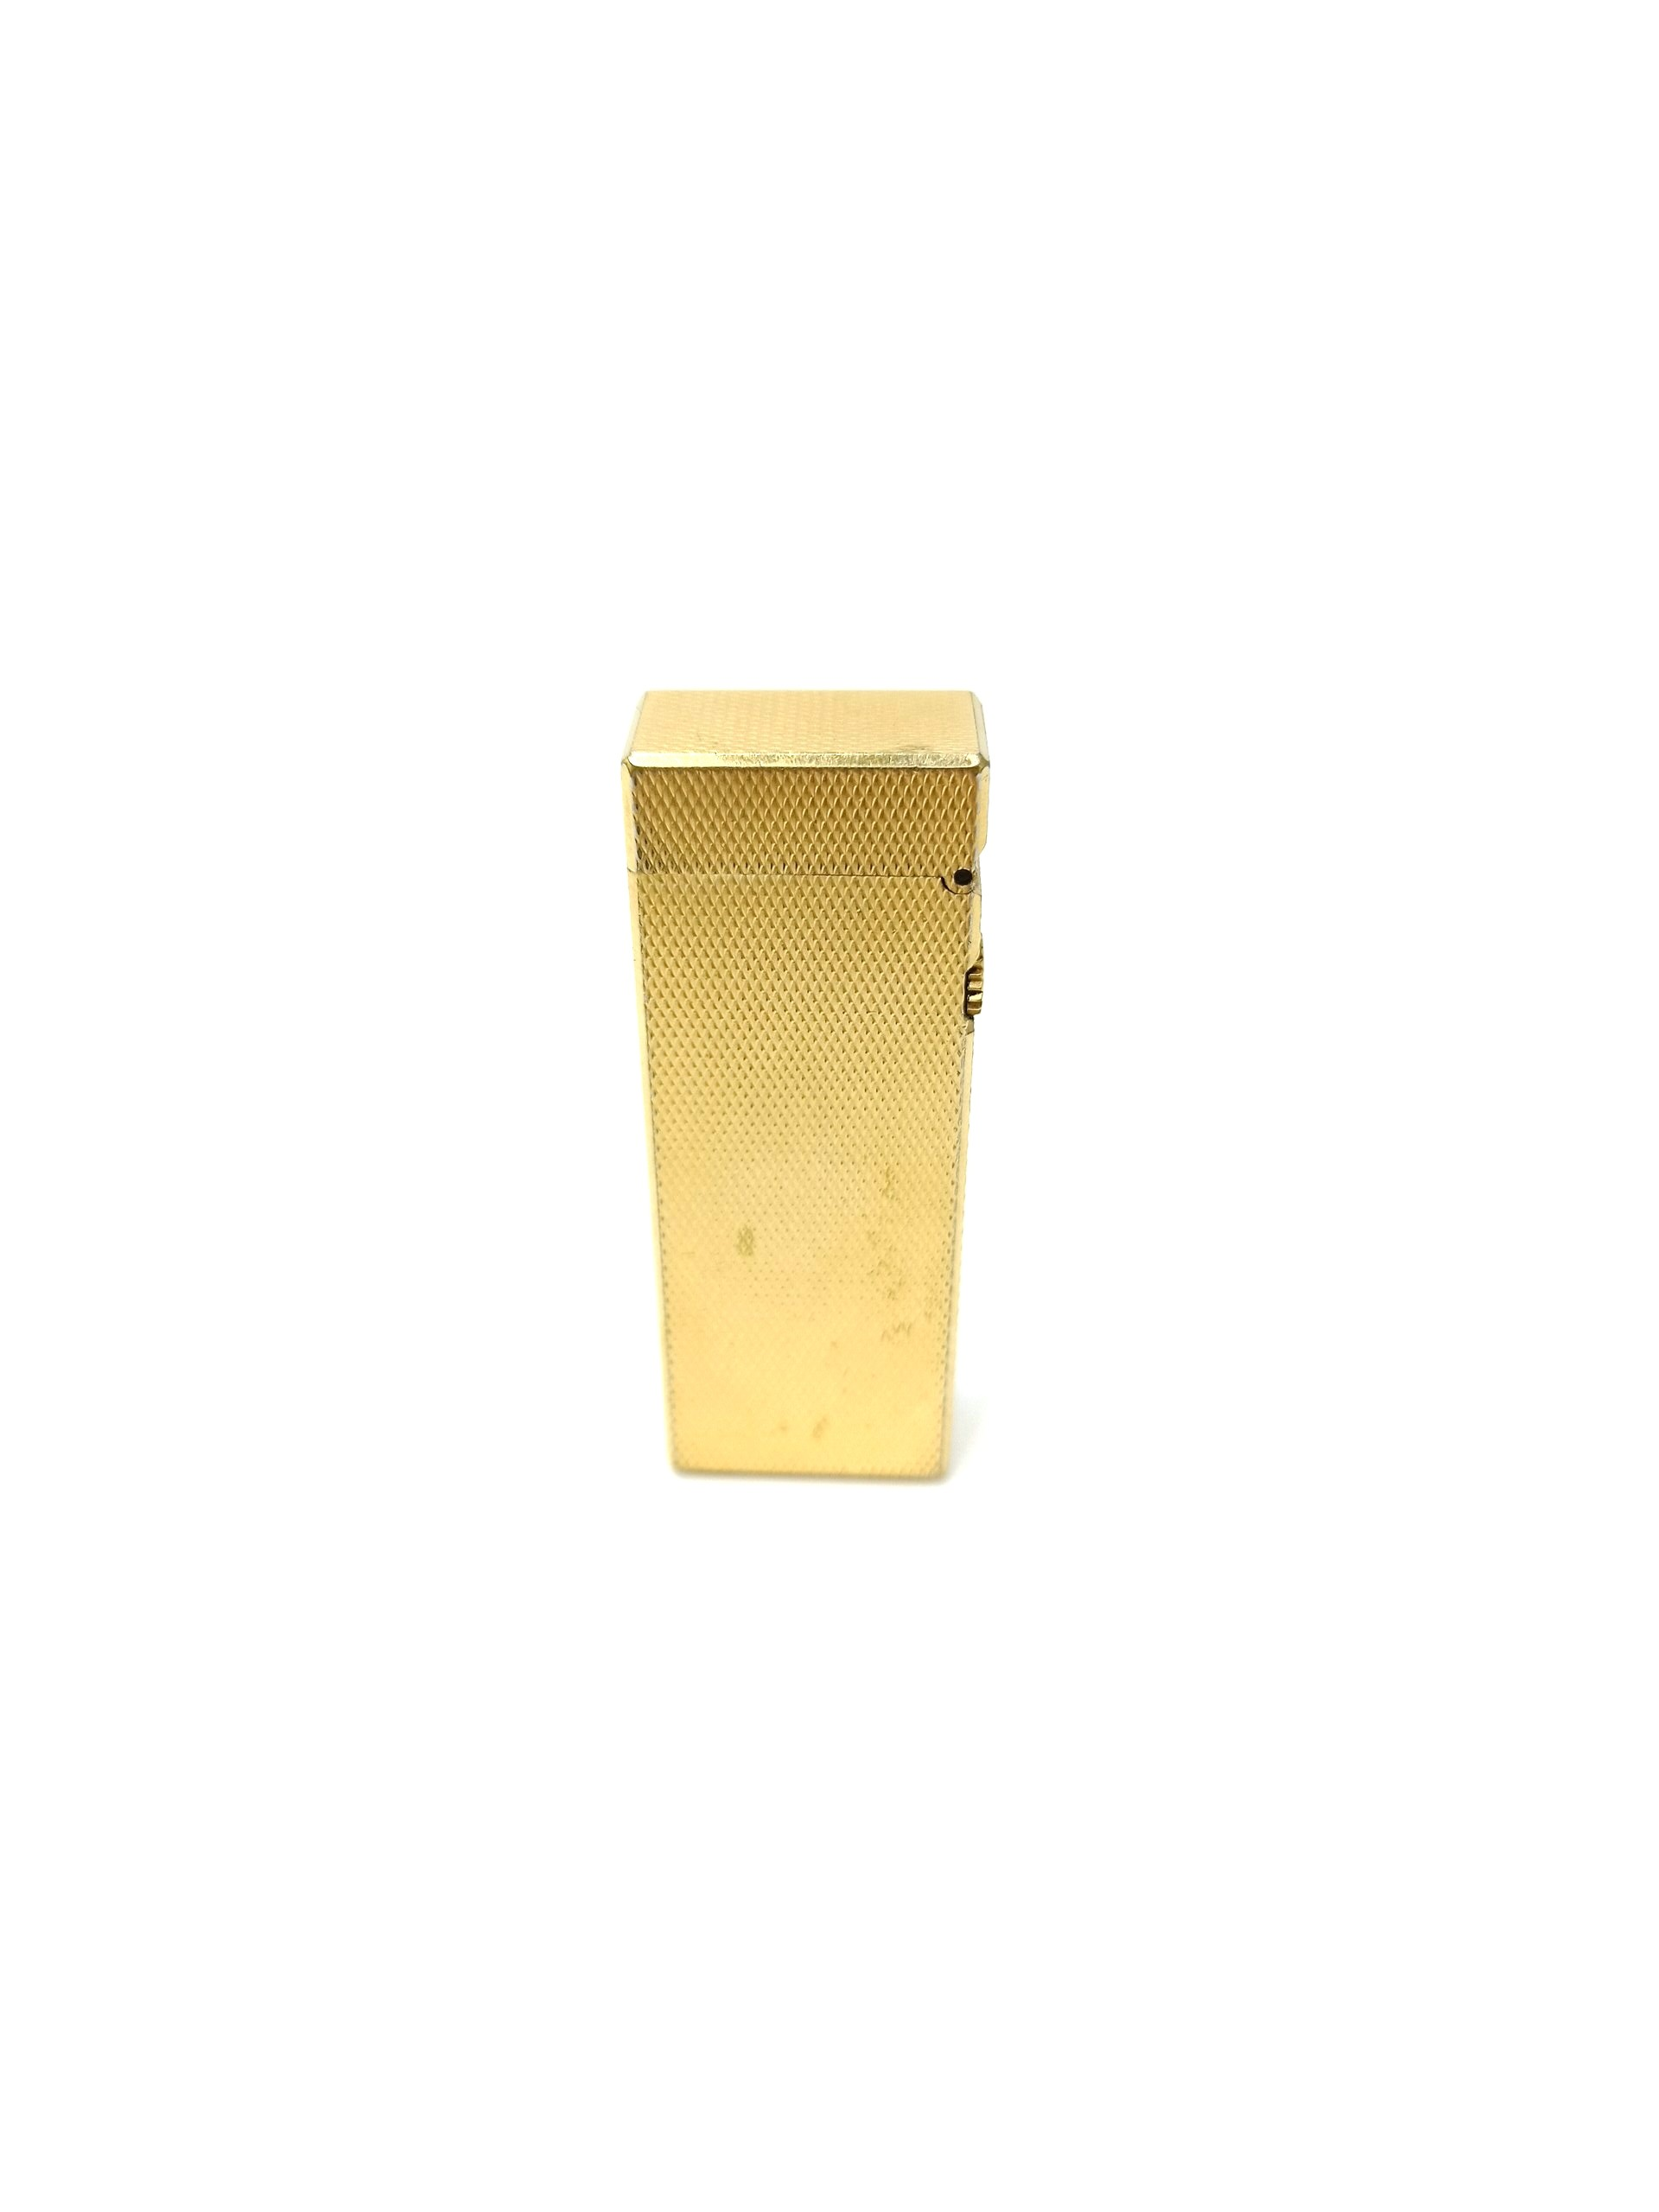 Dunhill US.re24153 Lighter